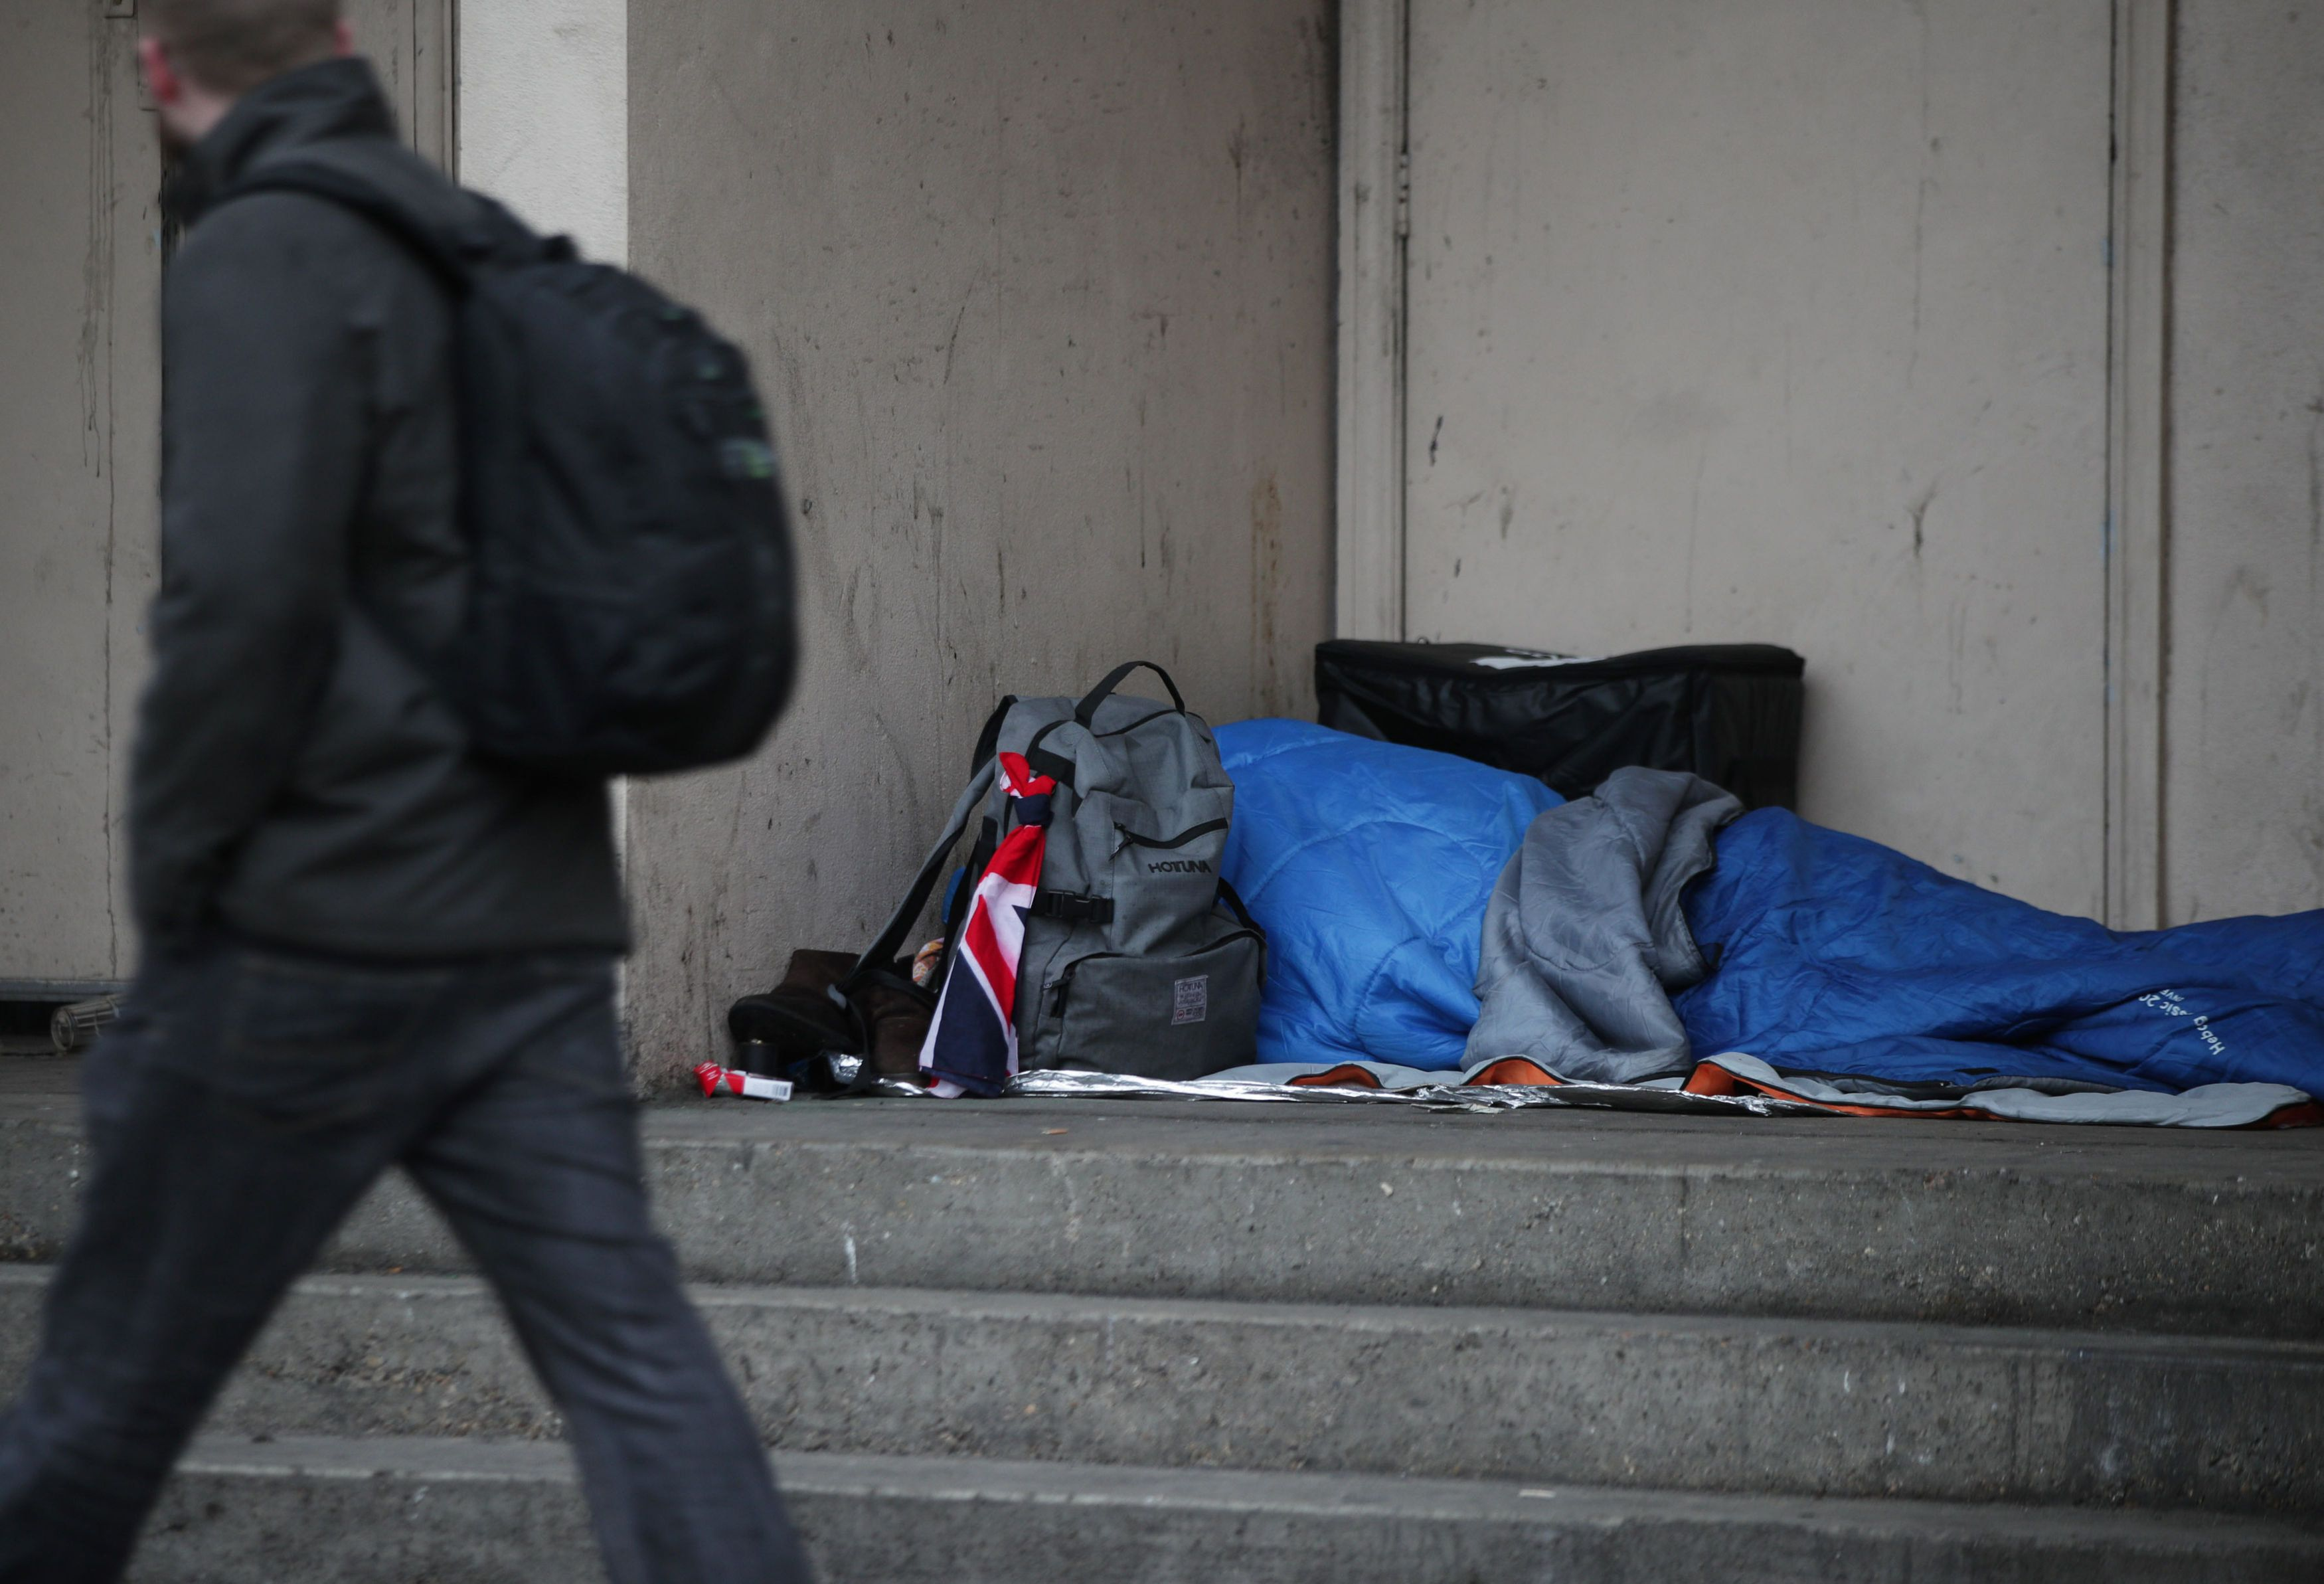 Homeless Man Died On Floor Of Packed Shelter On Christmas Eve With 'Nowhere Else To